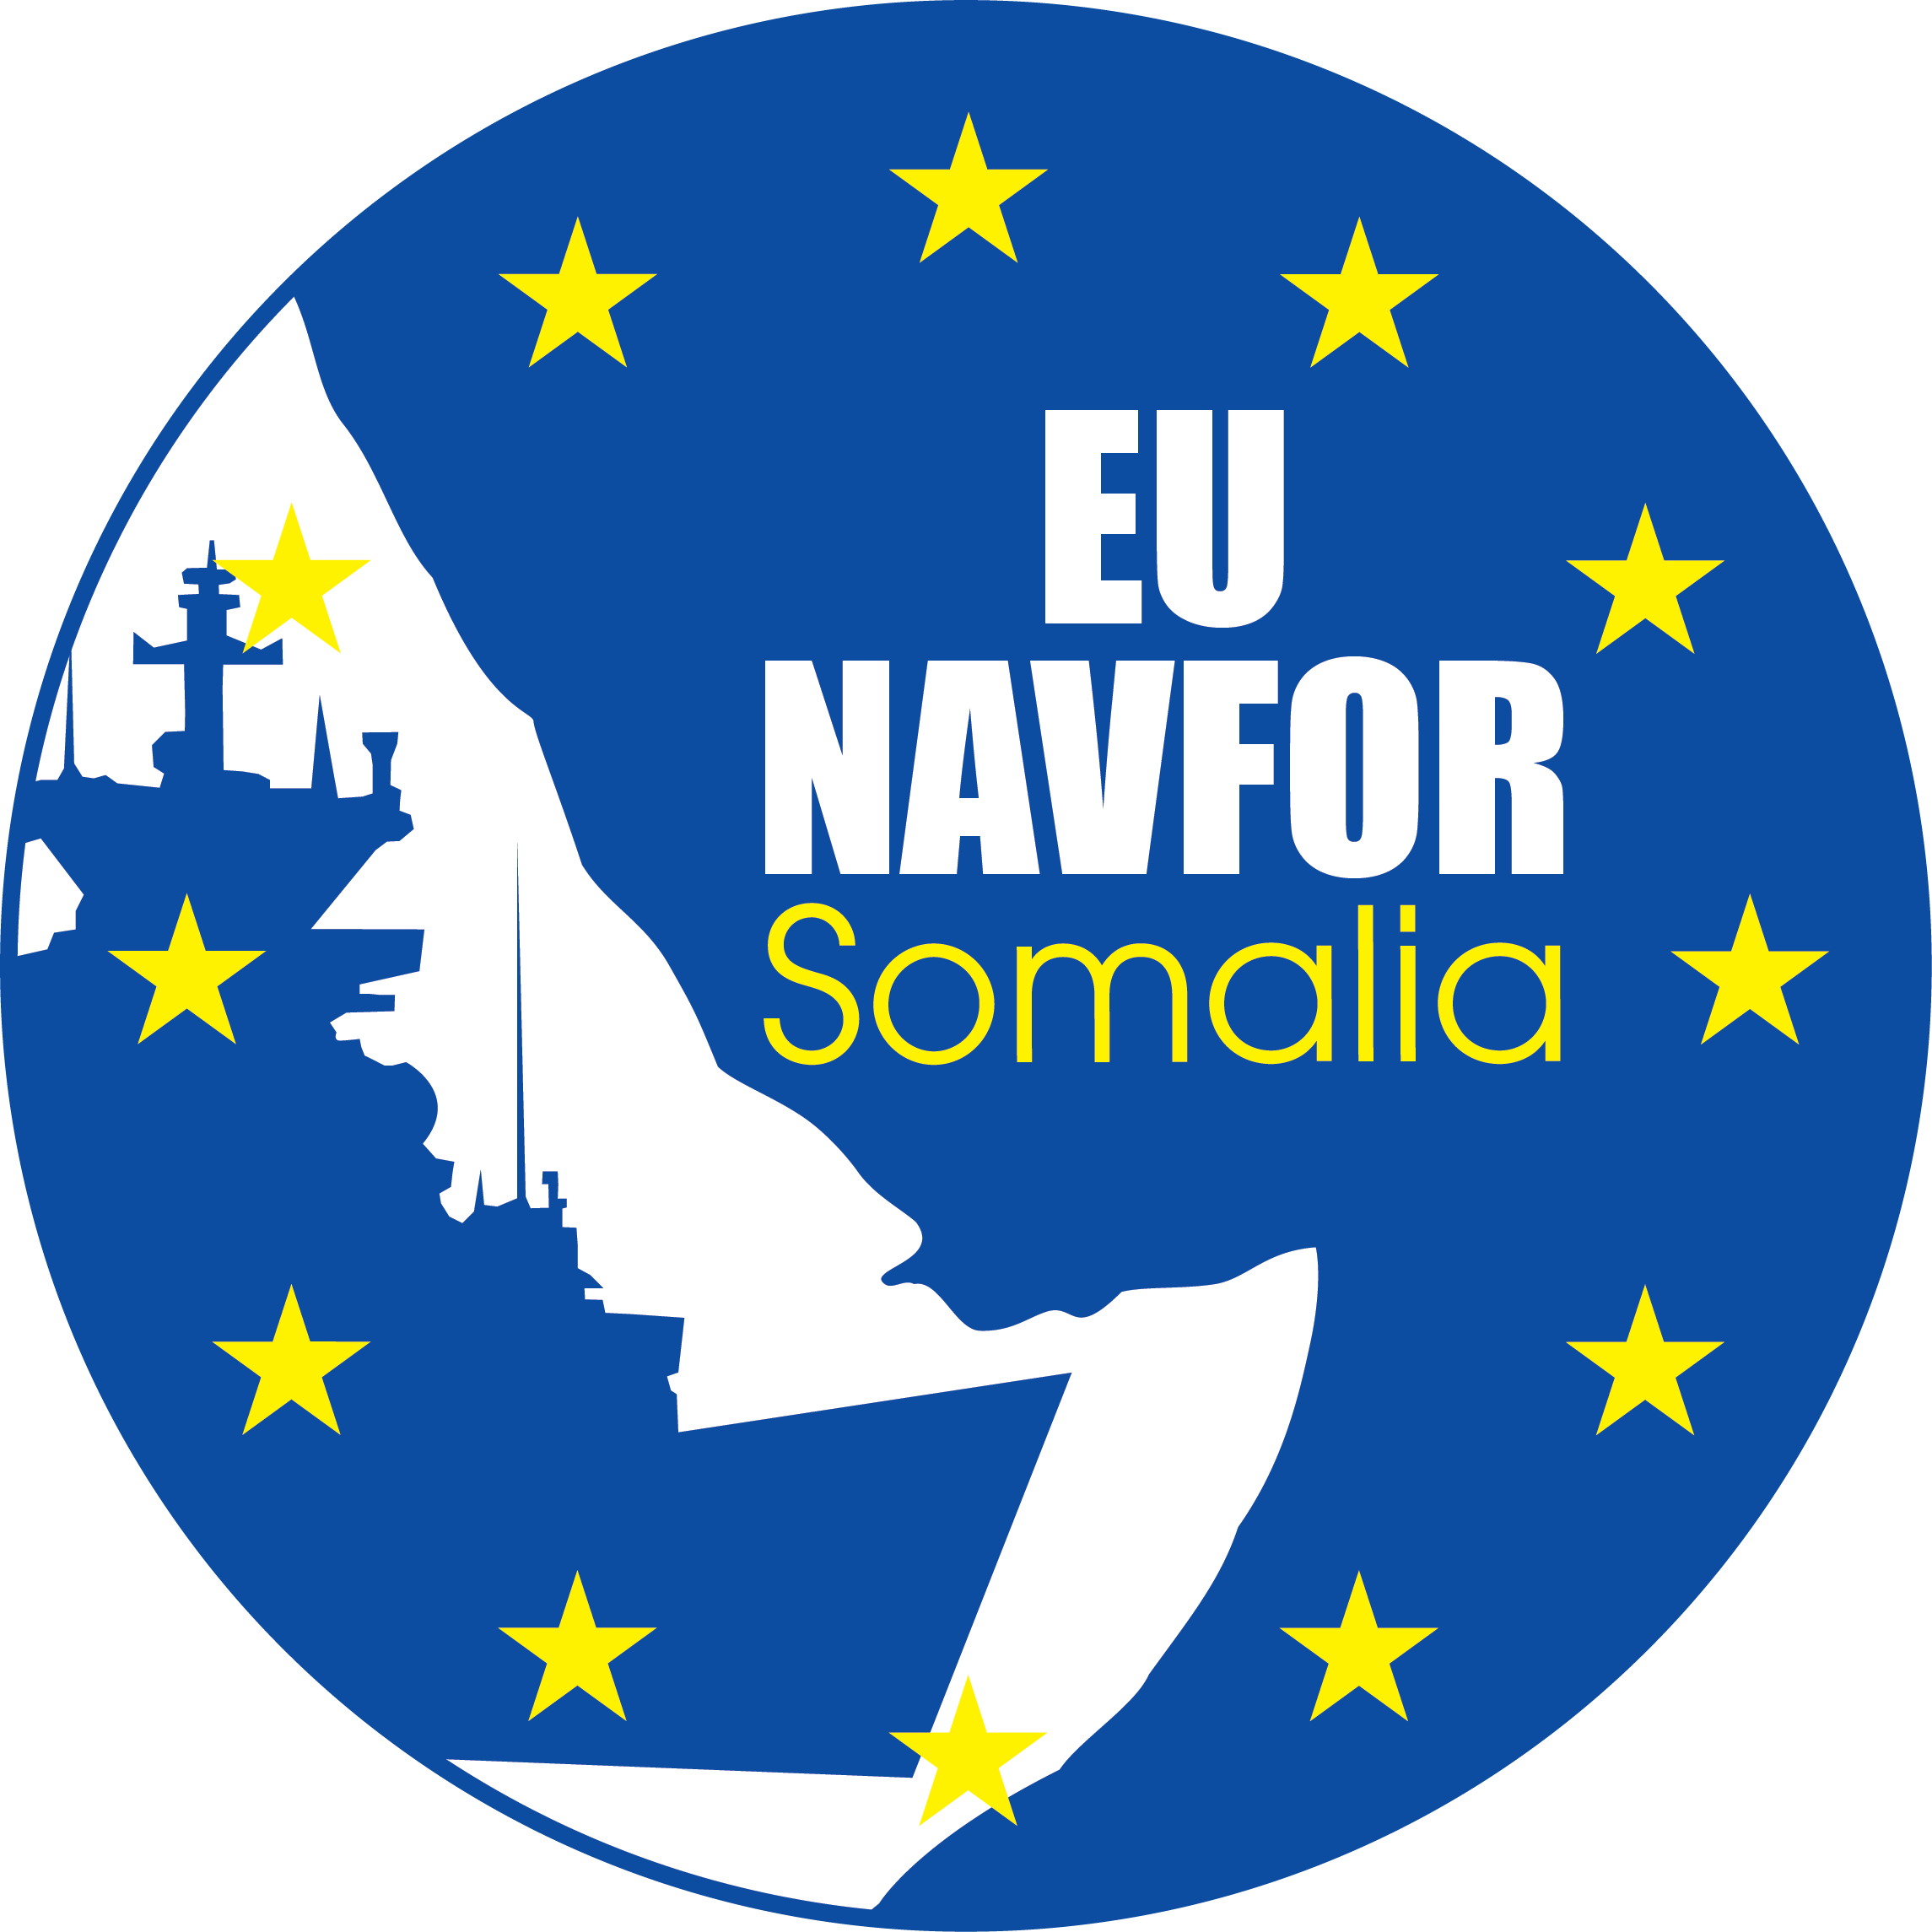 European Union Naval Force ATALANTA (EU NAVFOR) Somalia